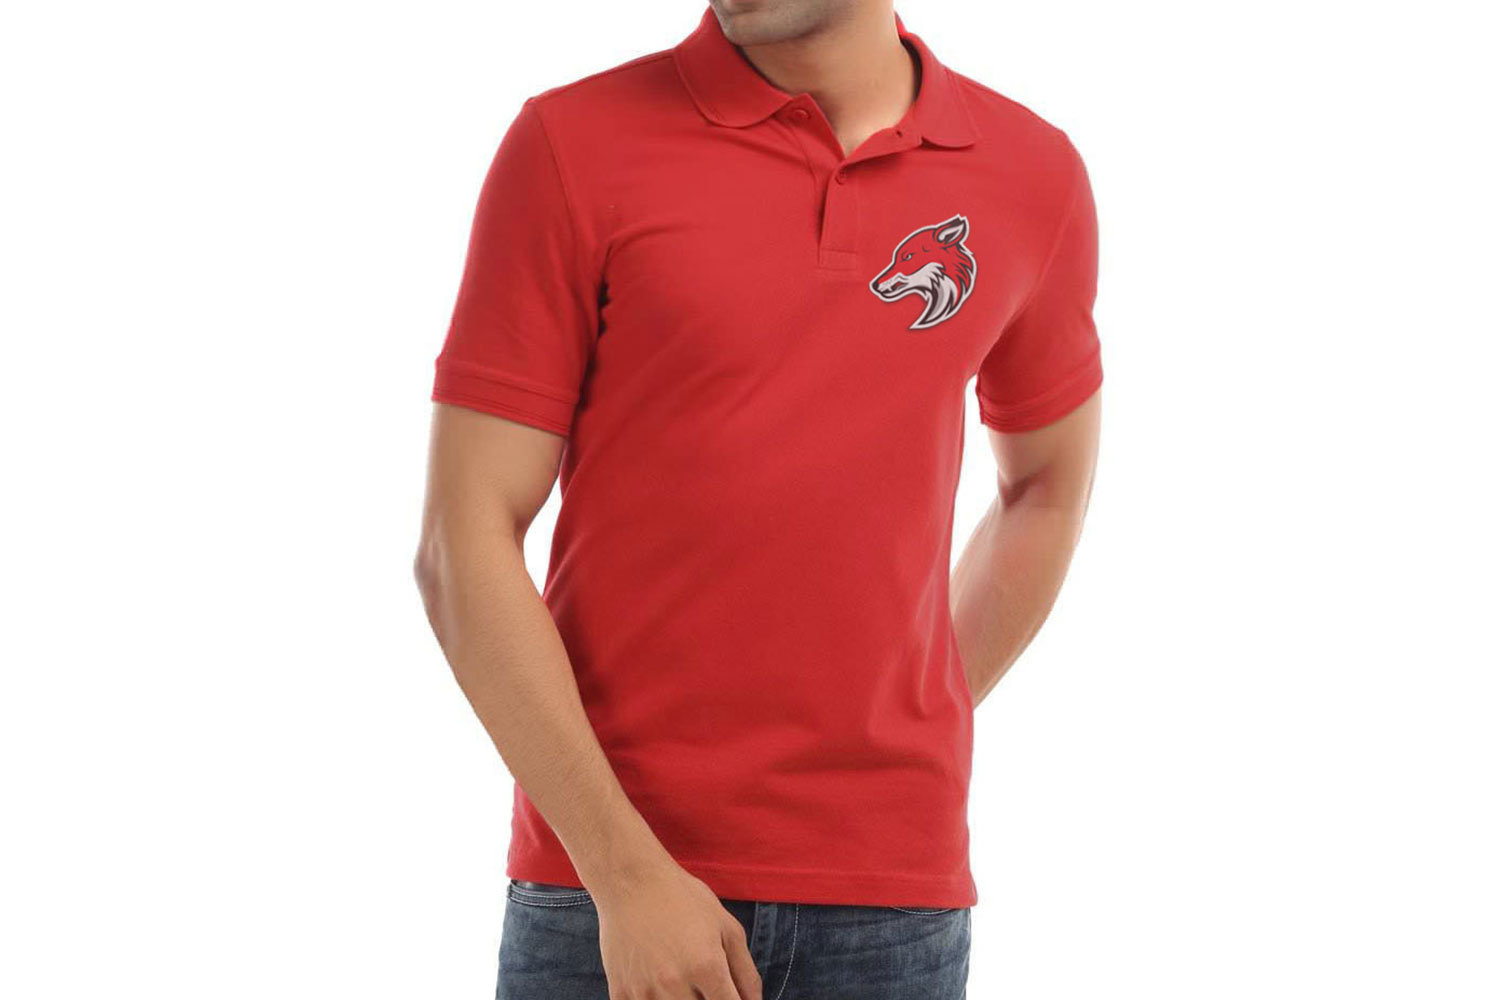 HCB_Foxes_Man-Collared-Red-Shirt.jpg